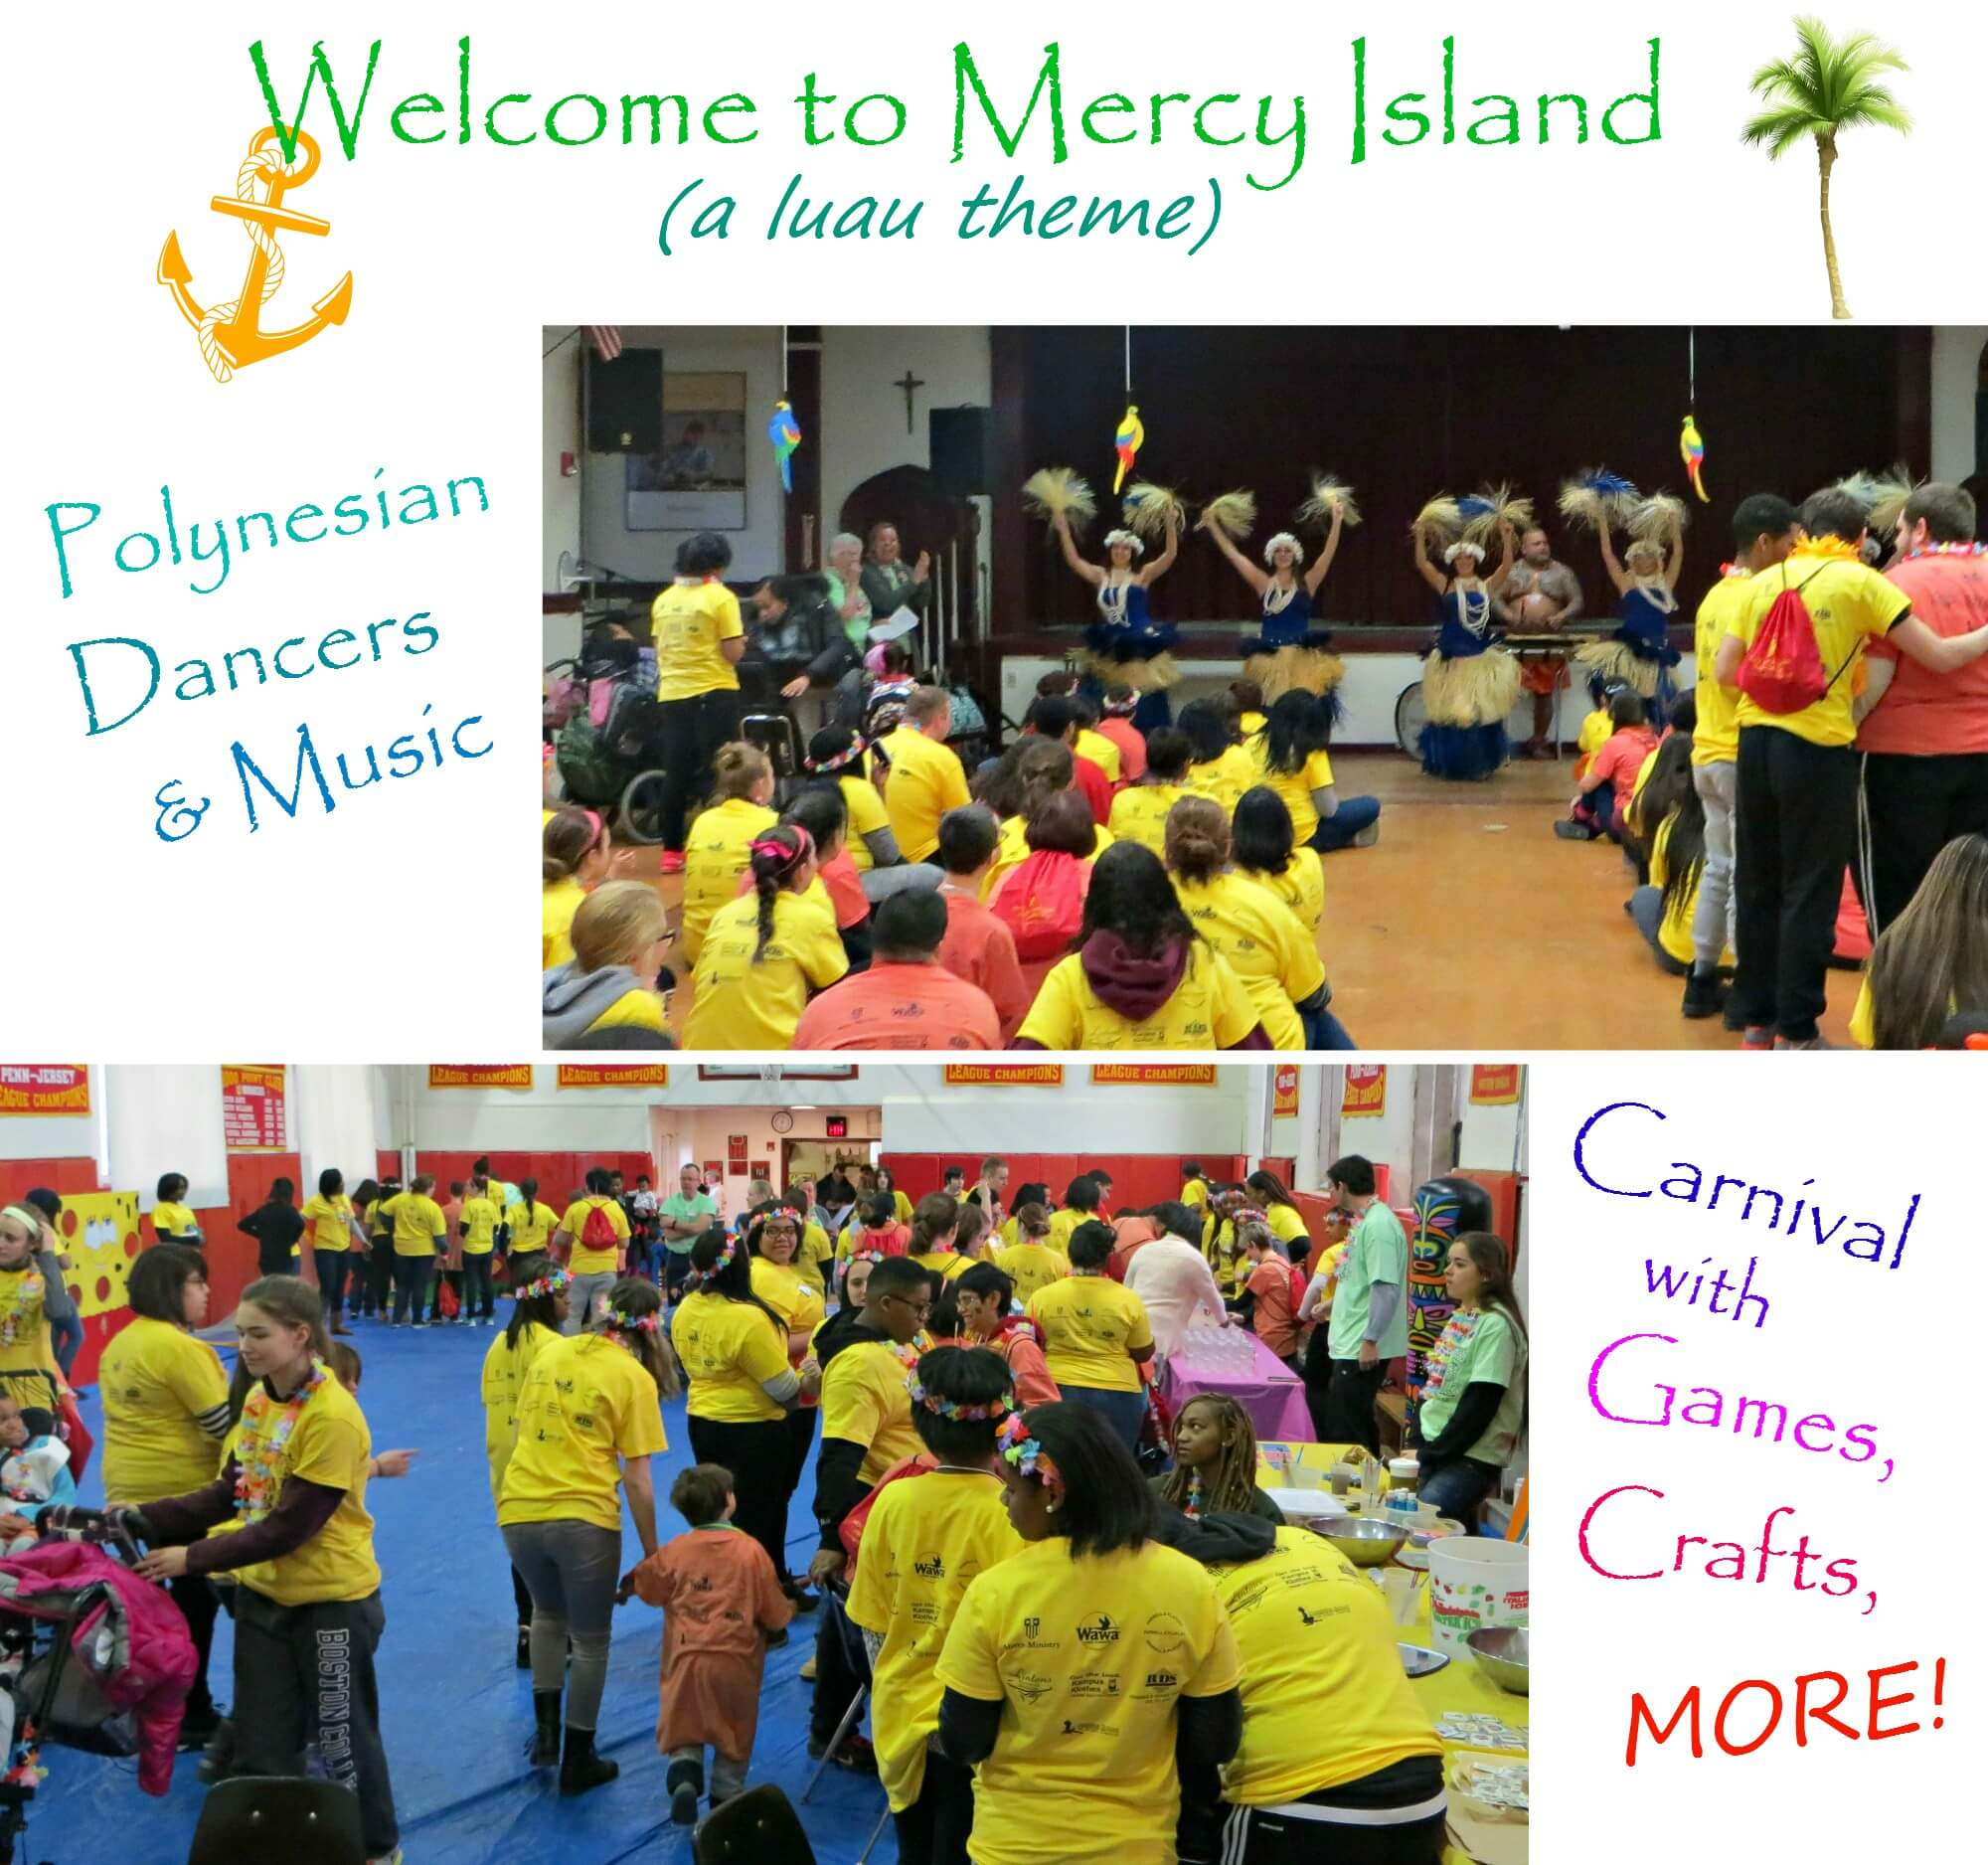 East Falls Local -- Welcome to Mercy Island collage text